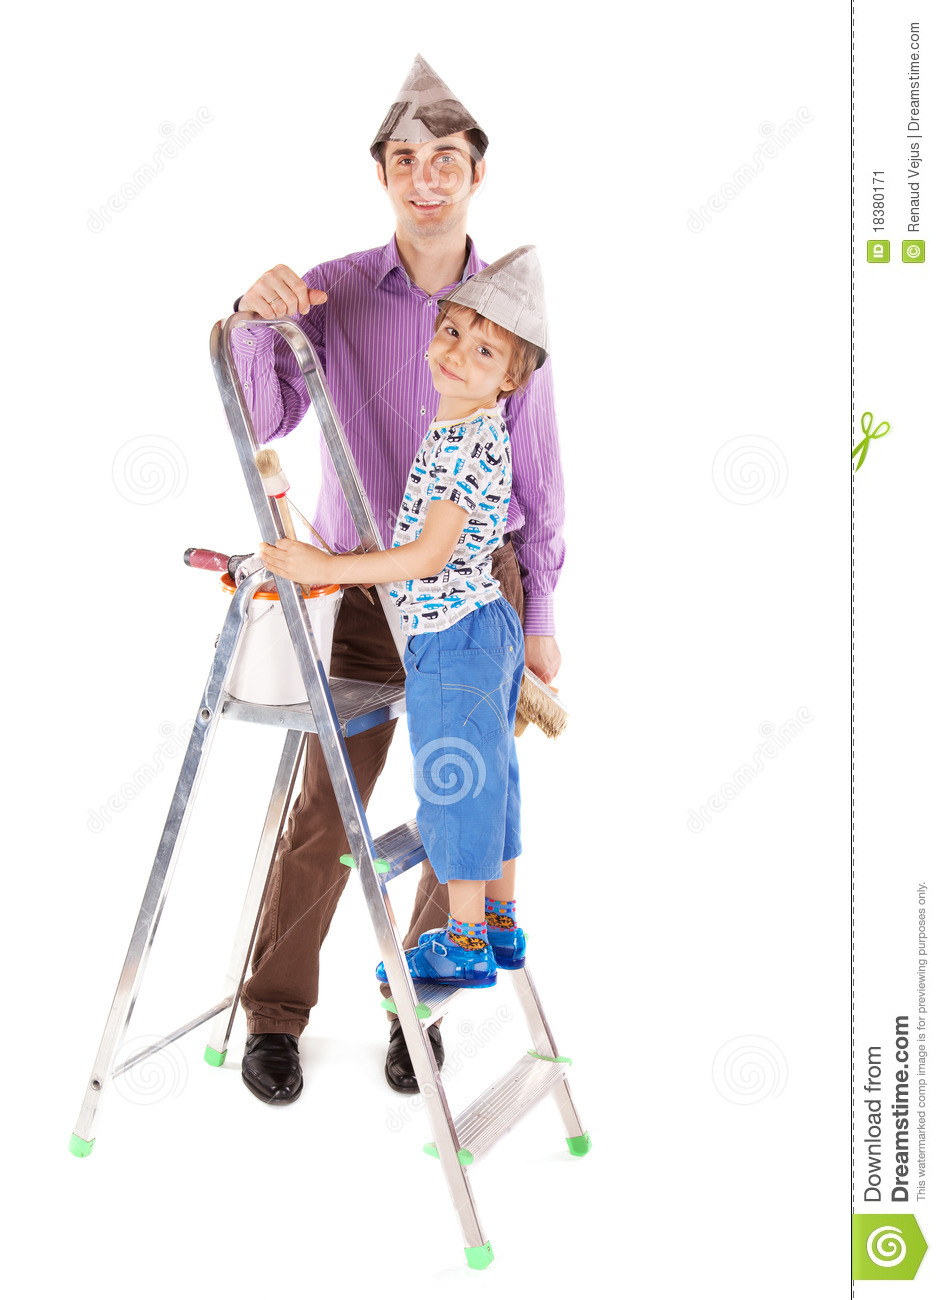 Father and his son decorating their new house